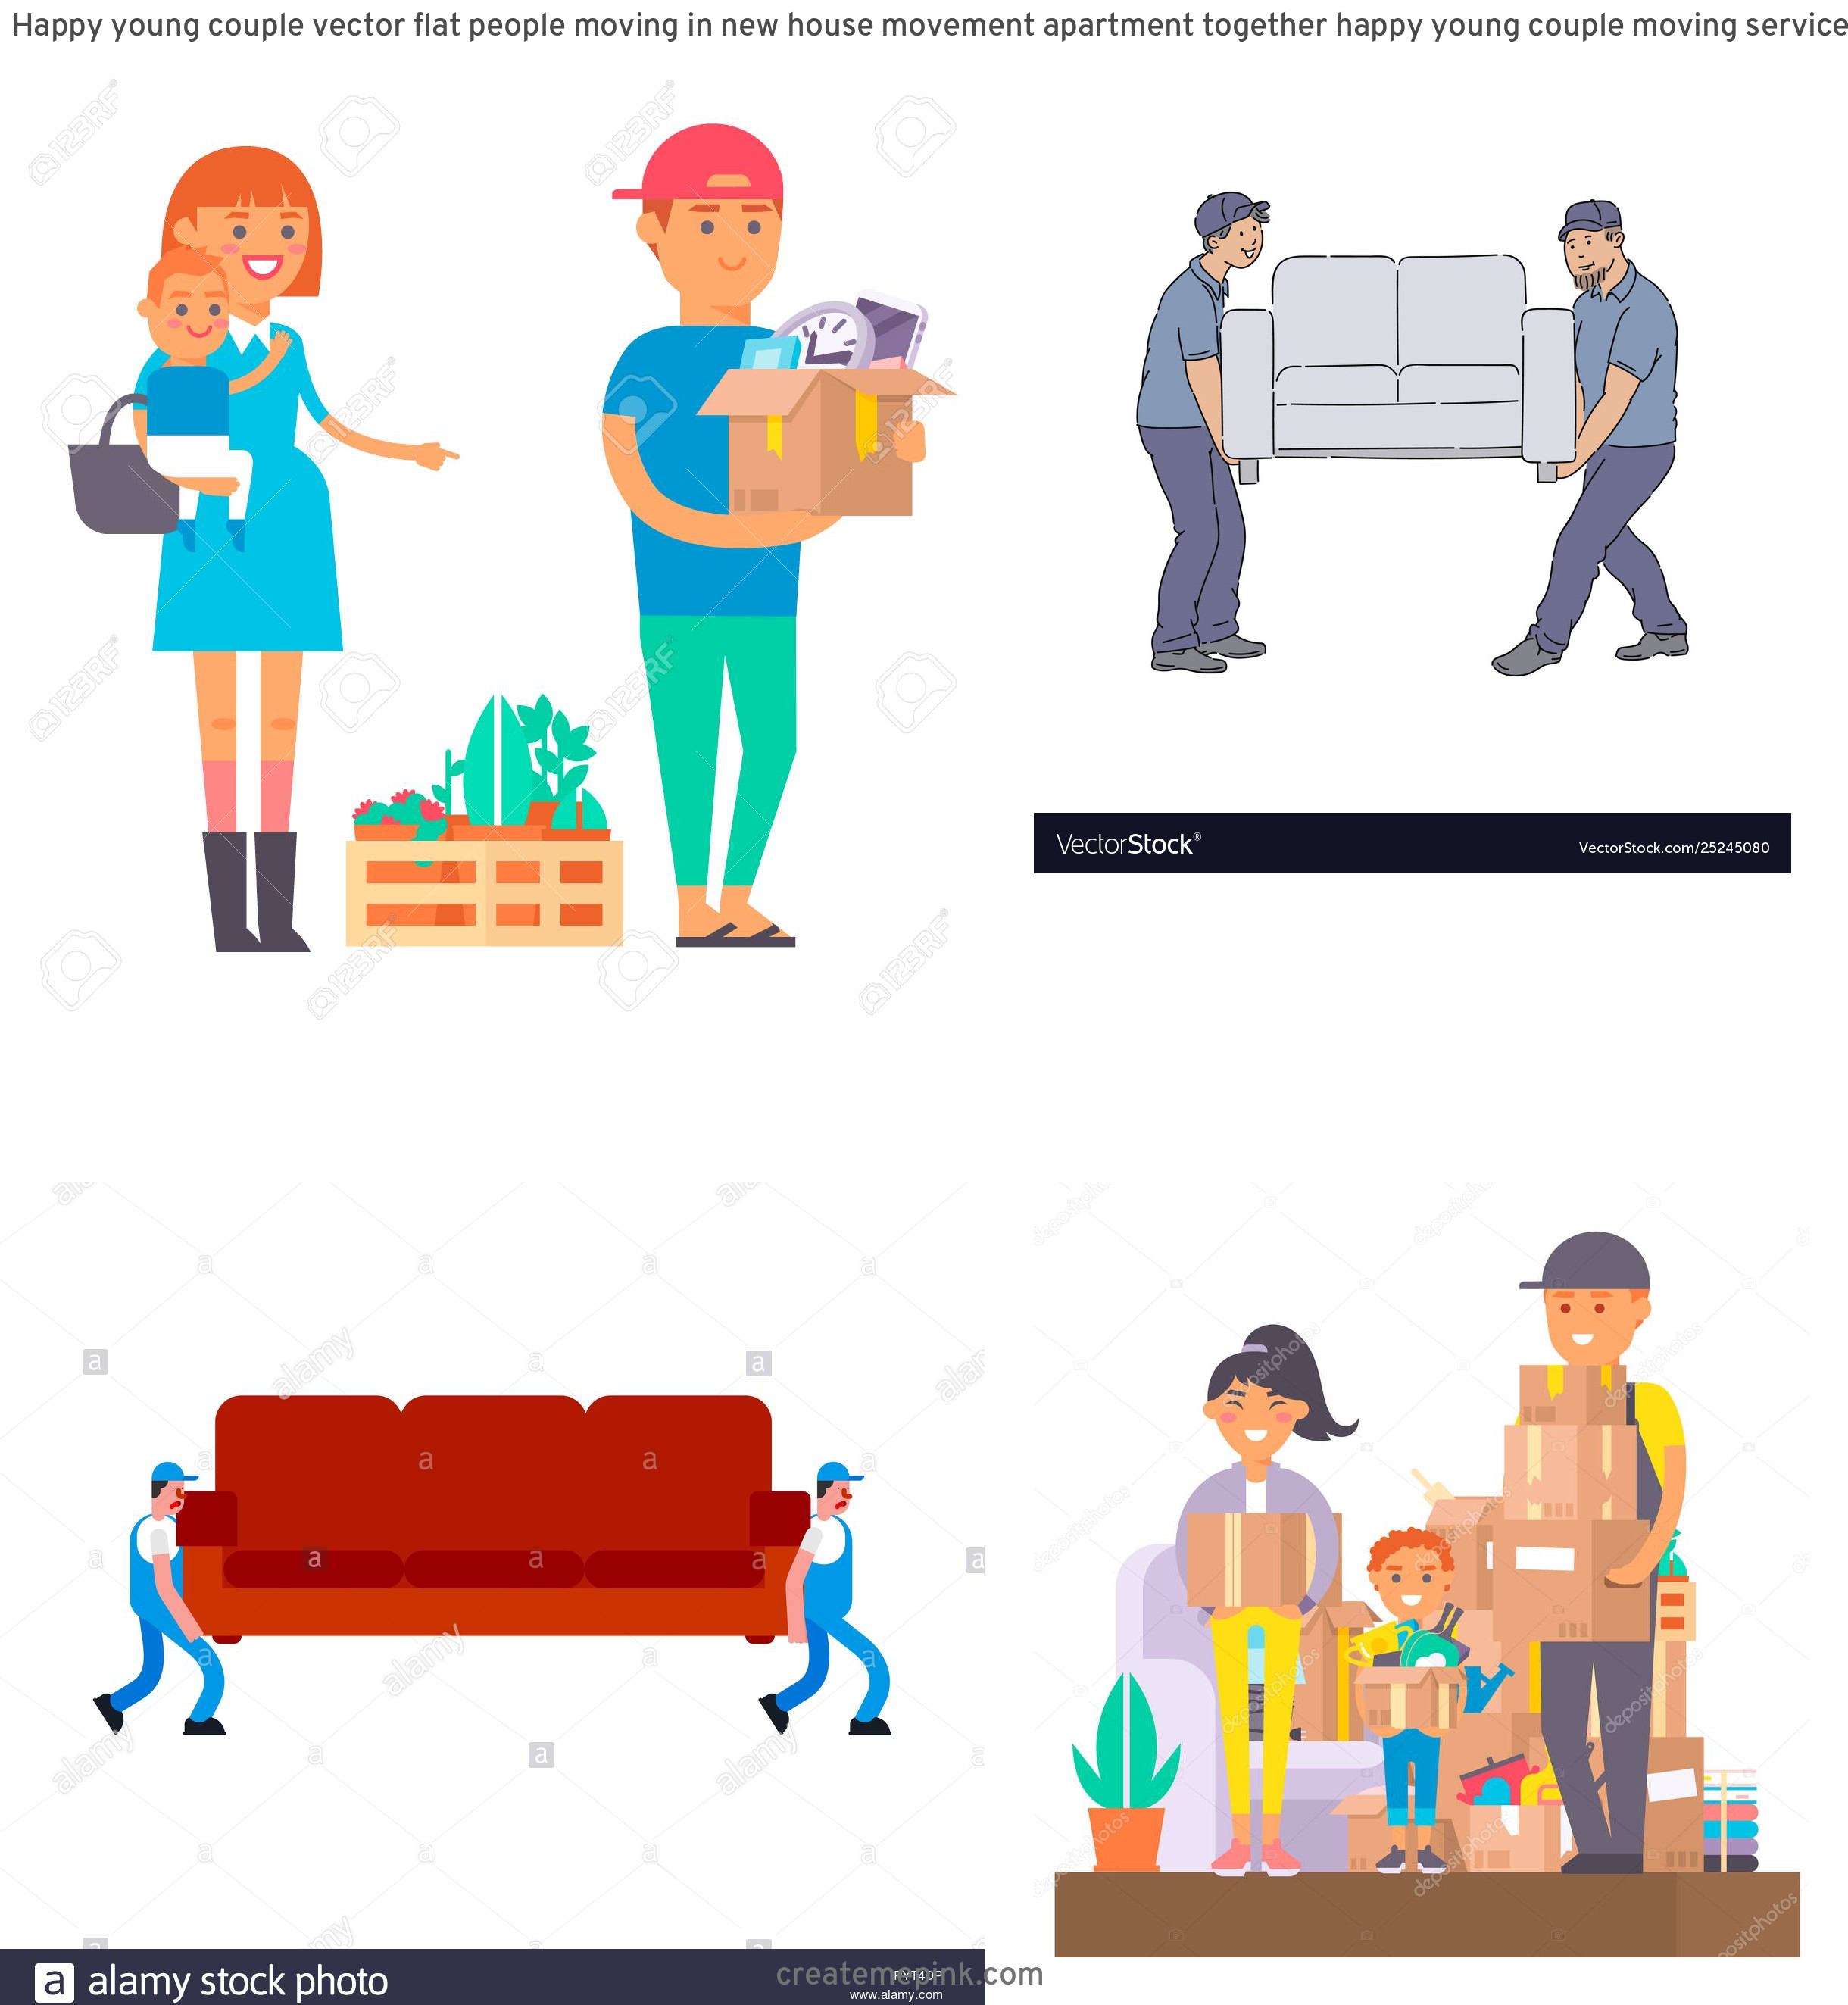 Vector Person Moving: Happy Young Couple Vector Flat People Moving In New House Movement Apartment Together Happy Young Couple Moving Service Woman Carrying Boxes Together With Family Person Unpacking Box Character Set